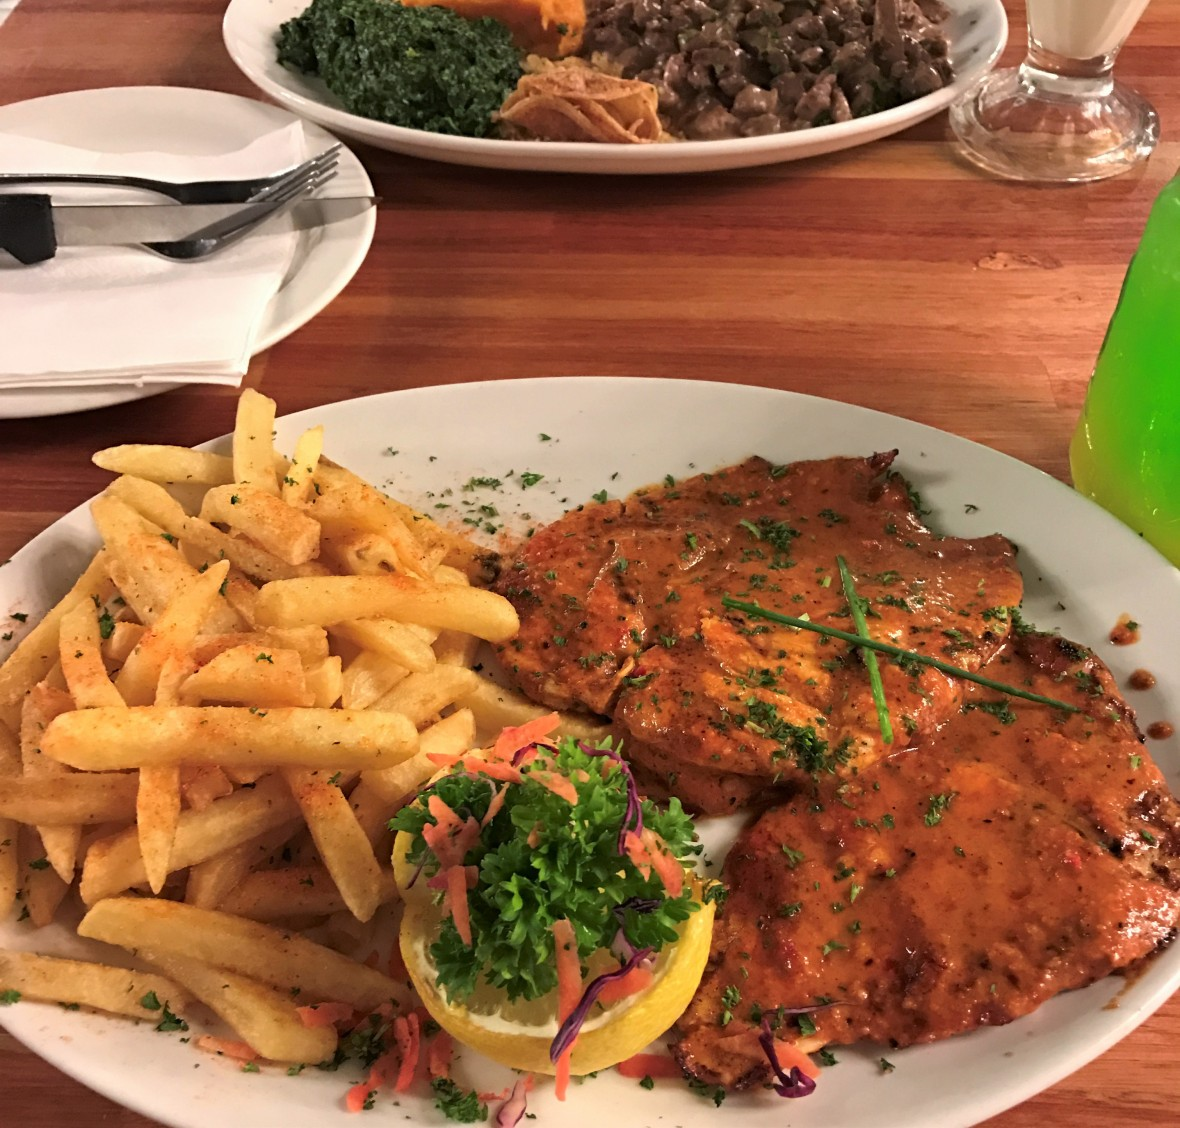 flame-grilled-peri-peri-chicken-with-chips-and-rump-trinchado-calistos-johannesburg-south-africa